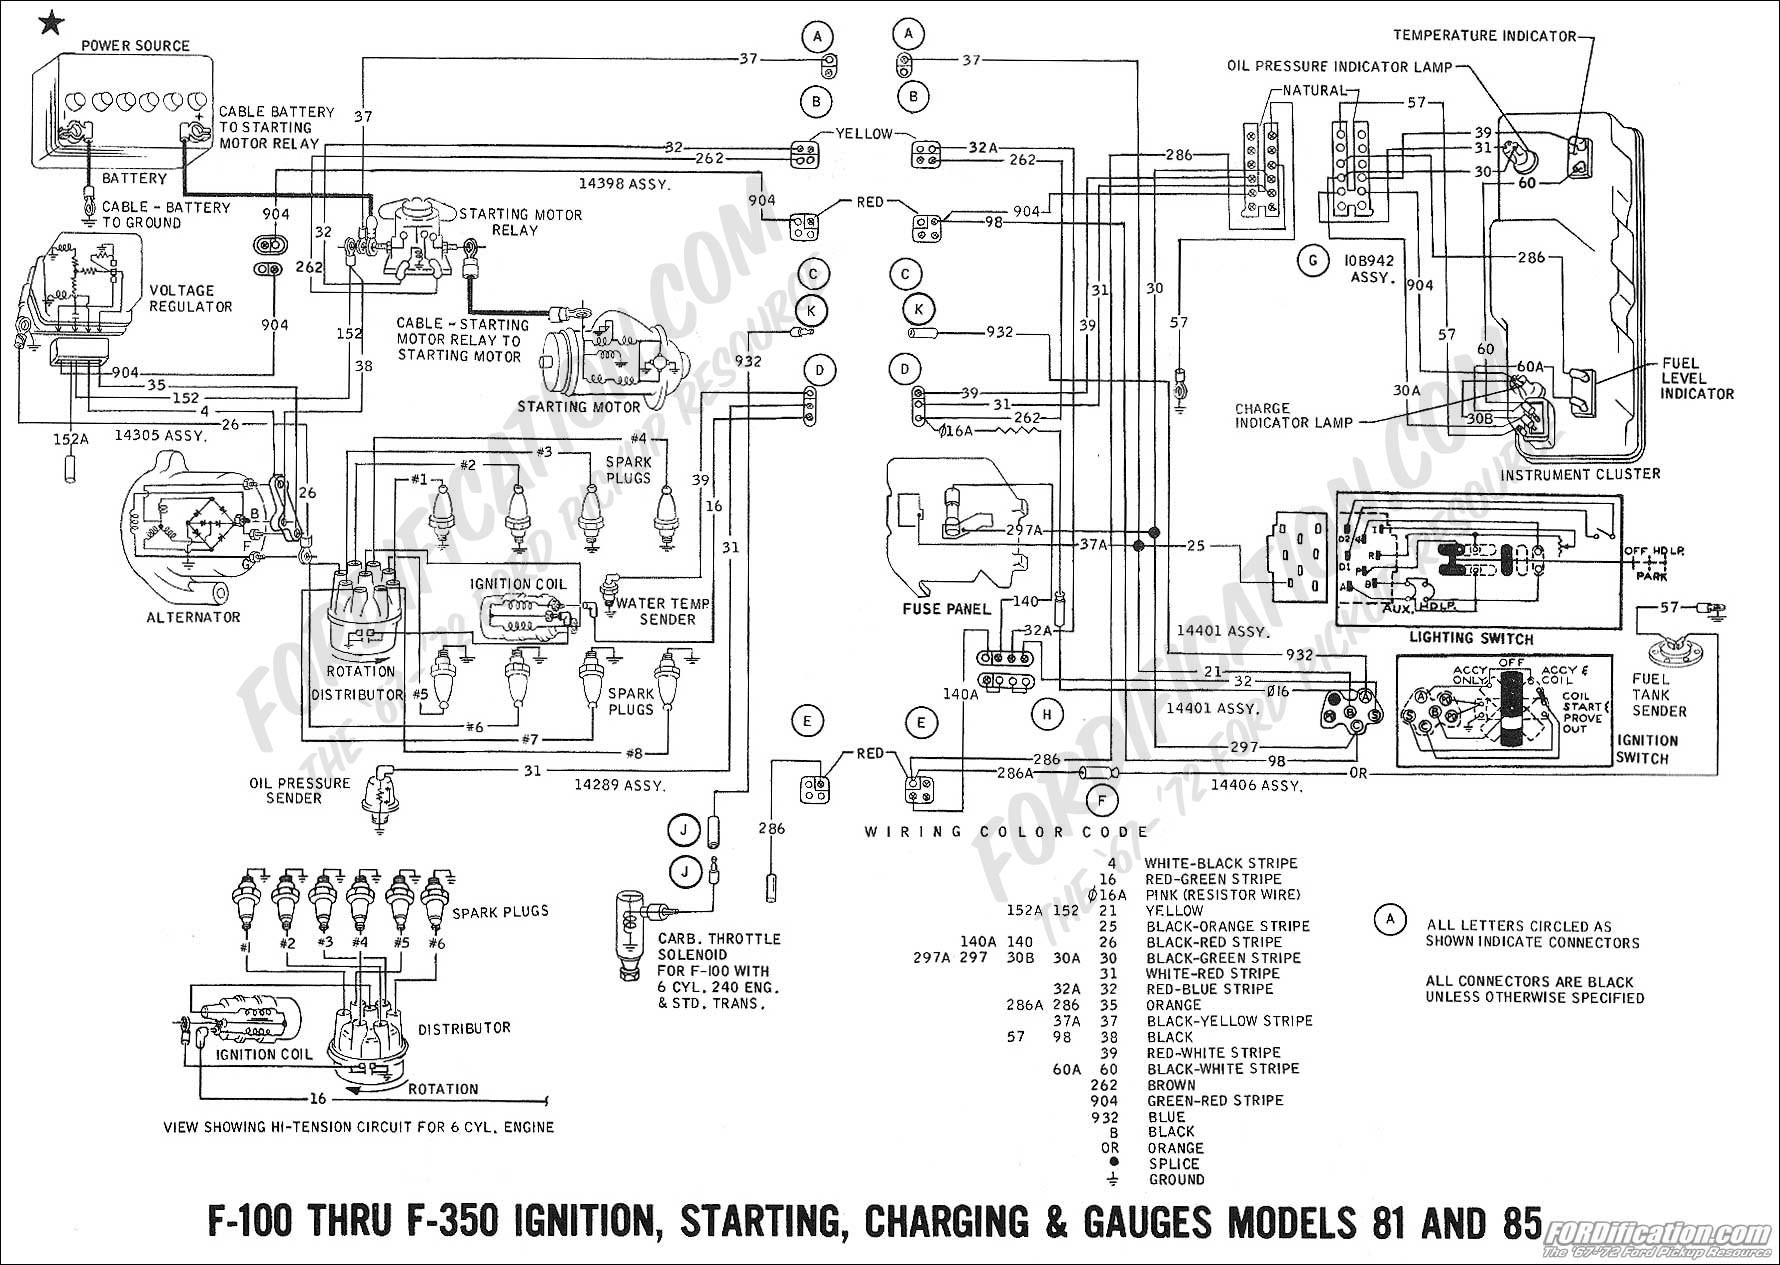 1976 Ford F700 Dash Wiring - daily update wiring diagram  Ford F Alternator Wiring Diagram on ford f150 wiring diagram, 1971 ford f100 power steering, 1946 ford truck wiring diagram, 1971 ford f100 carburetor, 1970 ford wiring diagram, 1971 ford f100 tires, 1992 chevy silverado 1500 wiring diagram, 1971 ford f100 parts, ford 800 wiring diagram, basic ford solenoid wiring diagram, 1971 ford f100 specifications, 1971 ford f100 4x4, 1971 chevrolet camaro wiring diagram, 1971 chevy nova wiring diagram, 1955 ford wiring diagram, 1971 oldsmobile cutlass wiring diagram, ford f-250 wiring diagram, 1971 chevrolet el camino wiring diagram, 1971 ford f100 engine, 1966 ford wiring diagram,